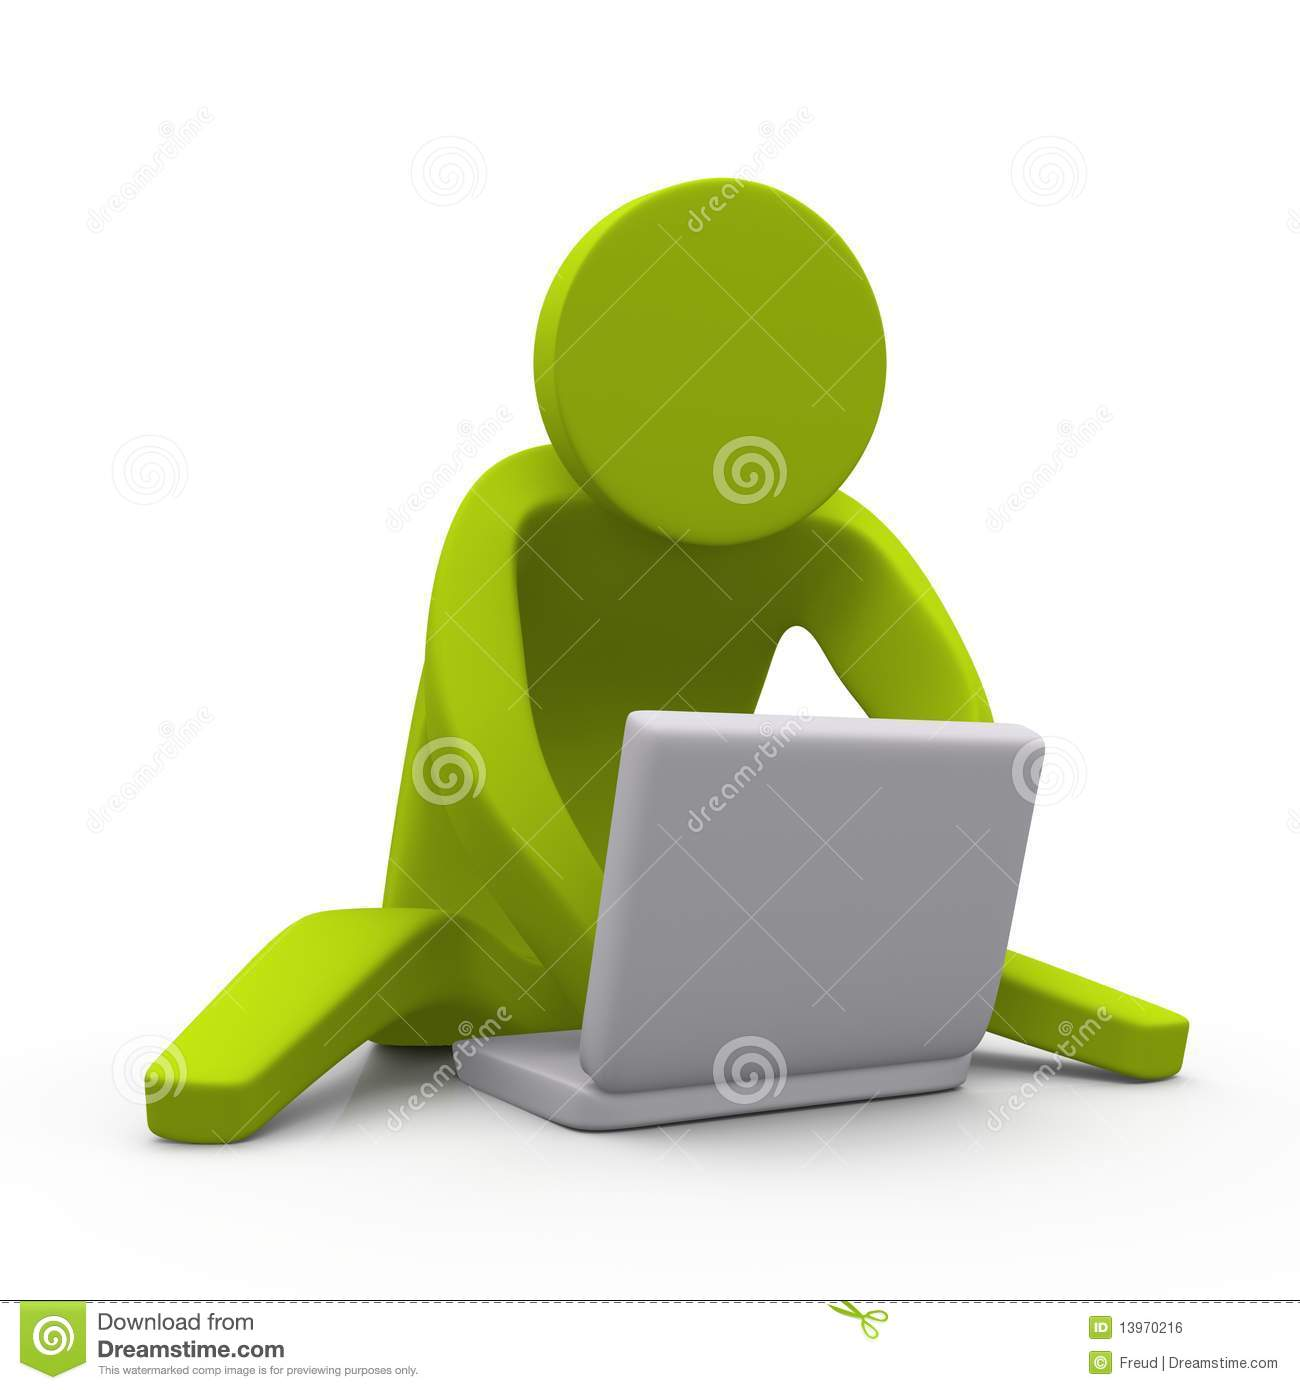 Chatting With Laptop Royalty Free Stock Image - Image: 13970216